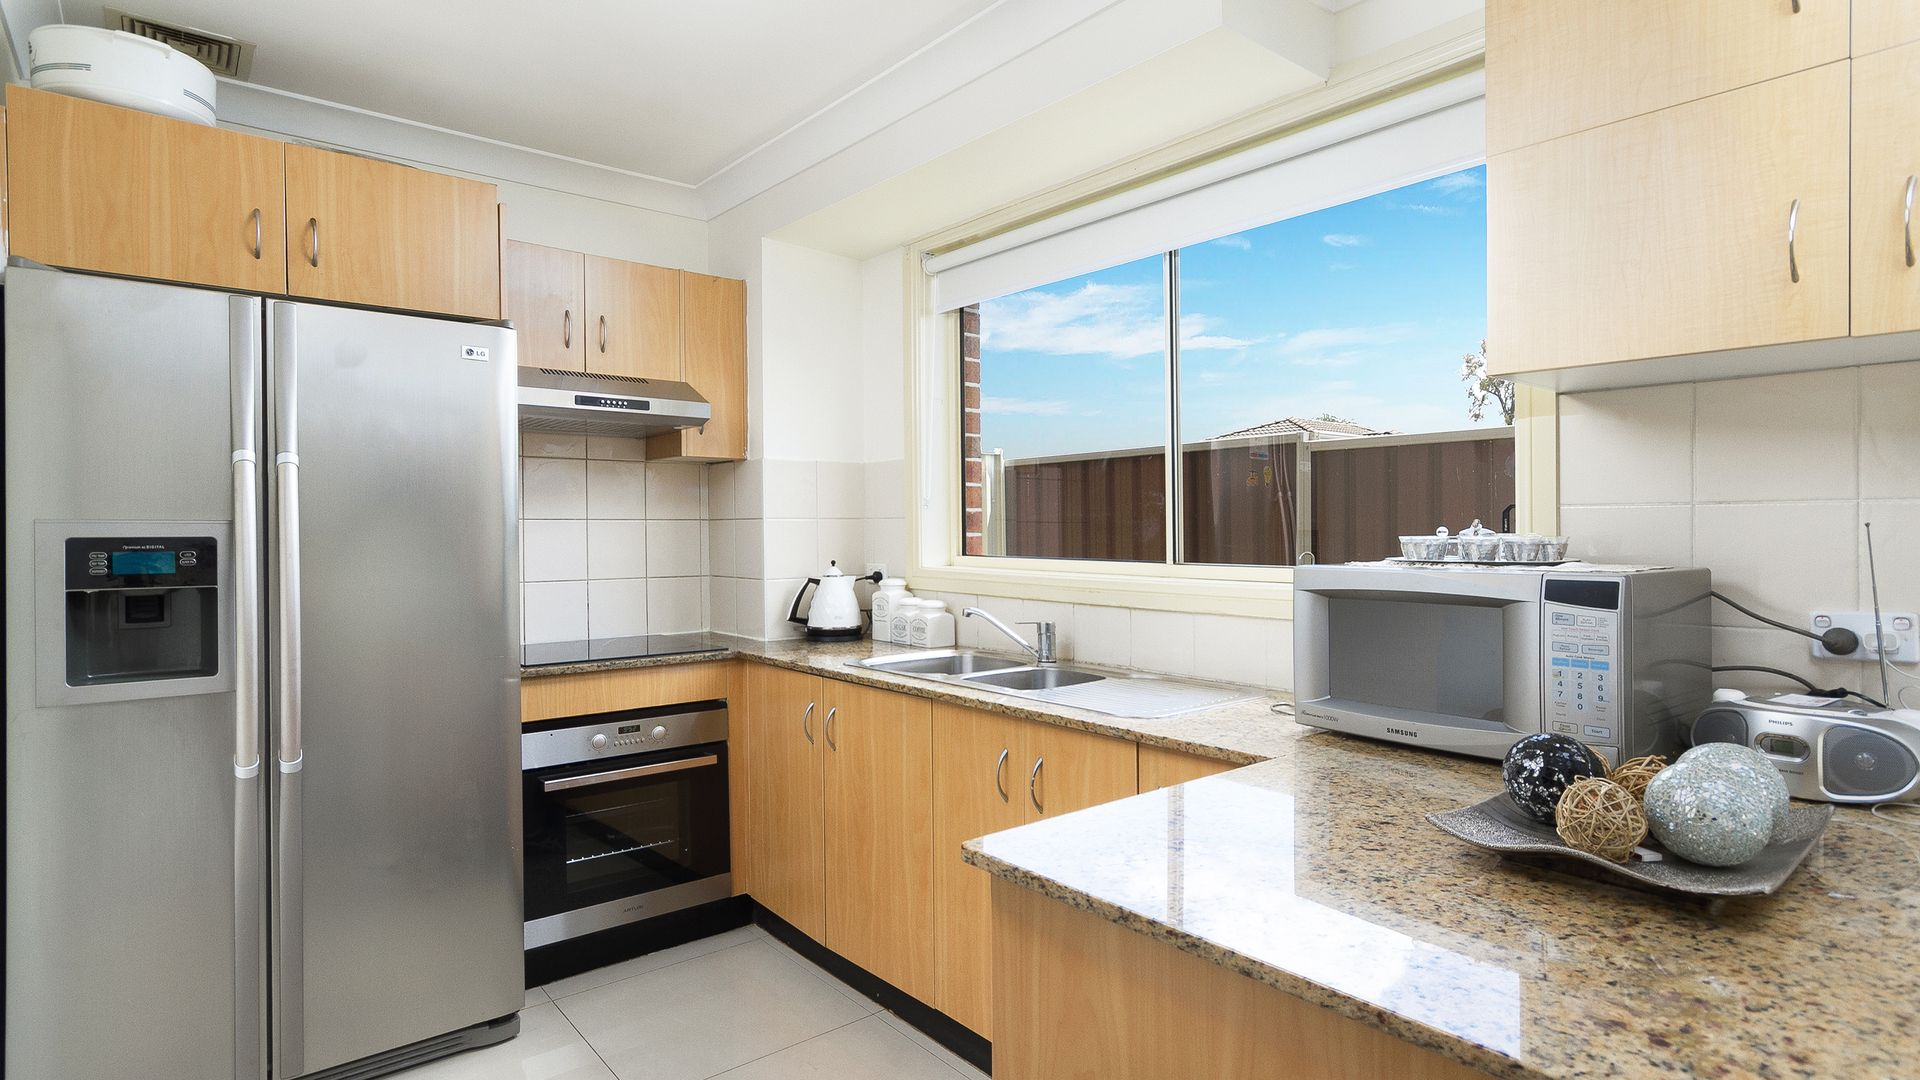 6/14-16 Brisbane Street, Oxley Park NSW 2760, Image 2